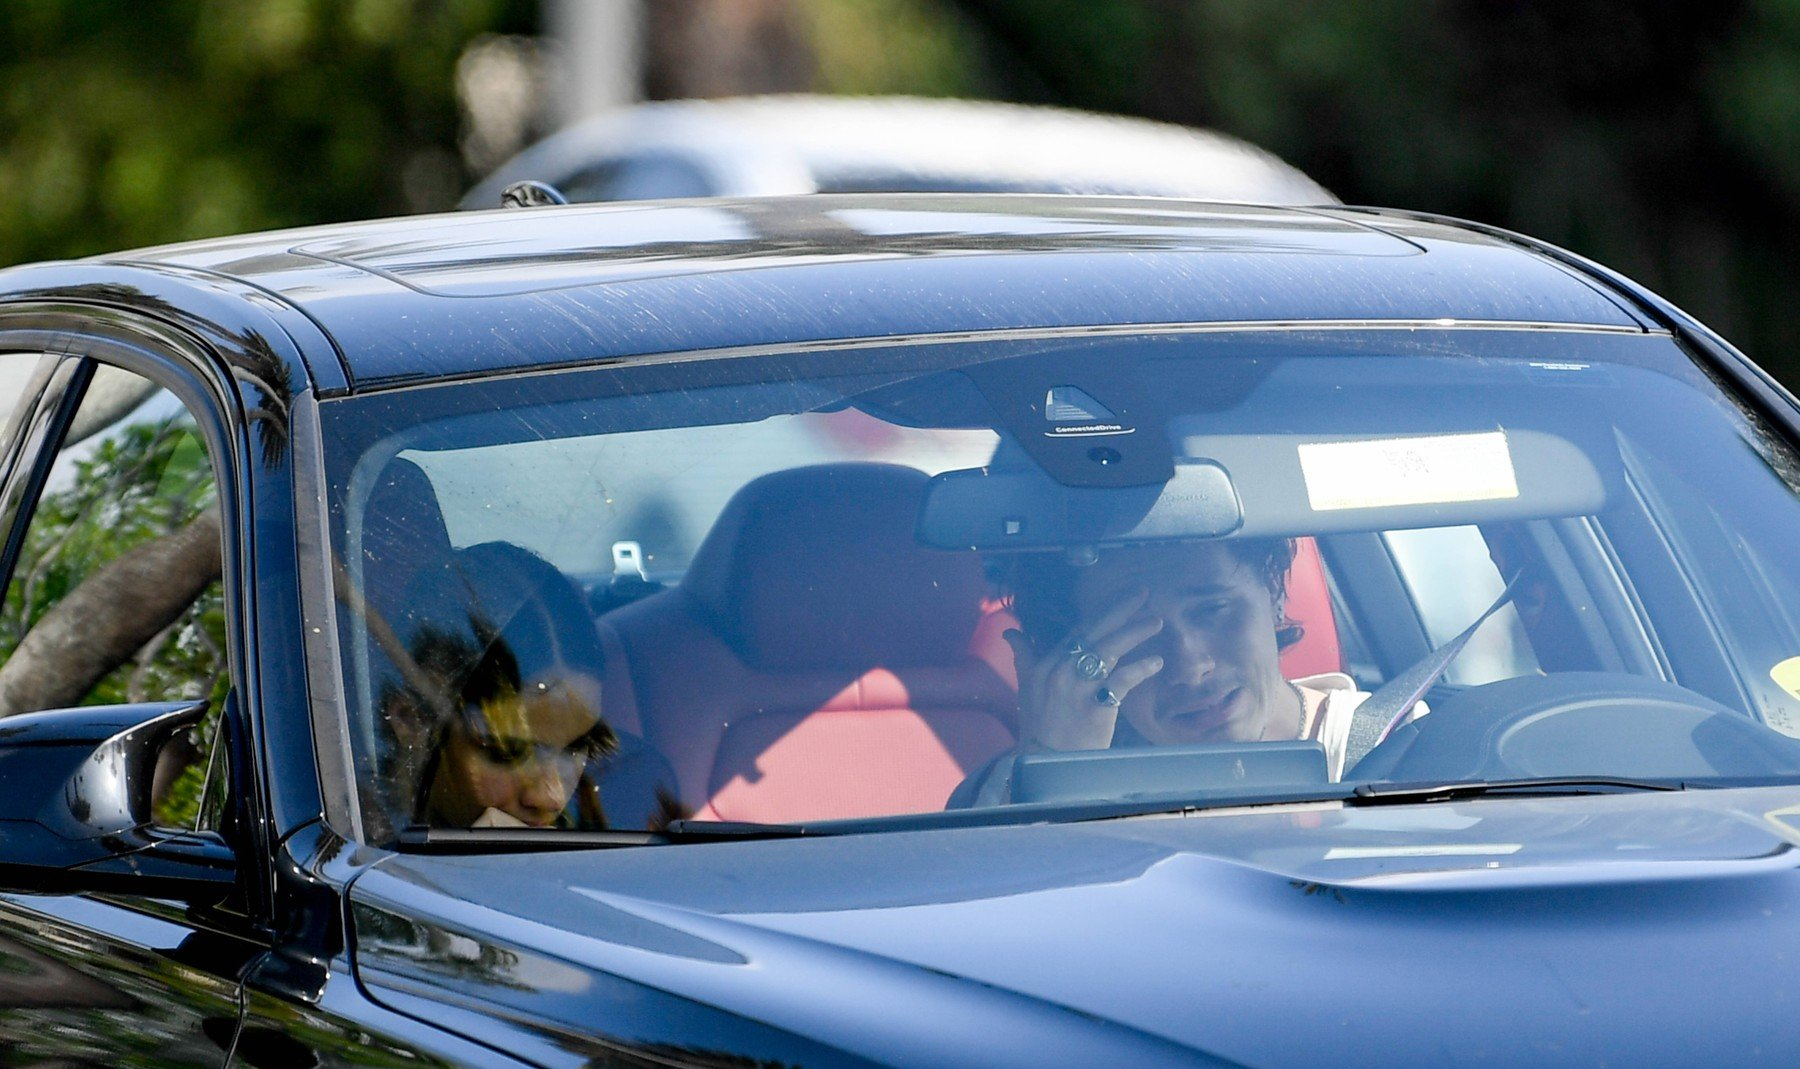 *PREMIUM EXCLUSIVE NO WEB UNTIL 1100AM BST 22ND APRIL* Brooklyn Beckham and Hanna Cross have a heated argument in his car. 20 Apr 2019, Image: 427324724, License: Rights-managed, Restrictions: World Rights, Model Release: no, Credit line: Profimedia, Mega Agency